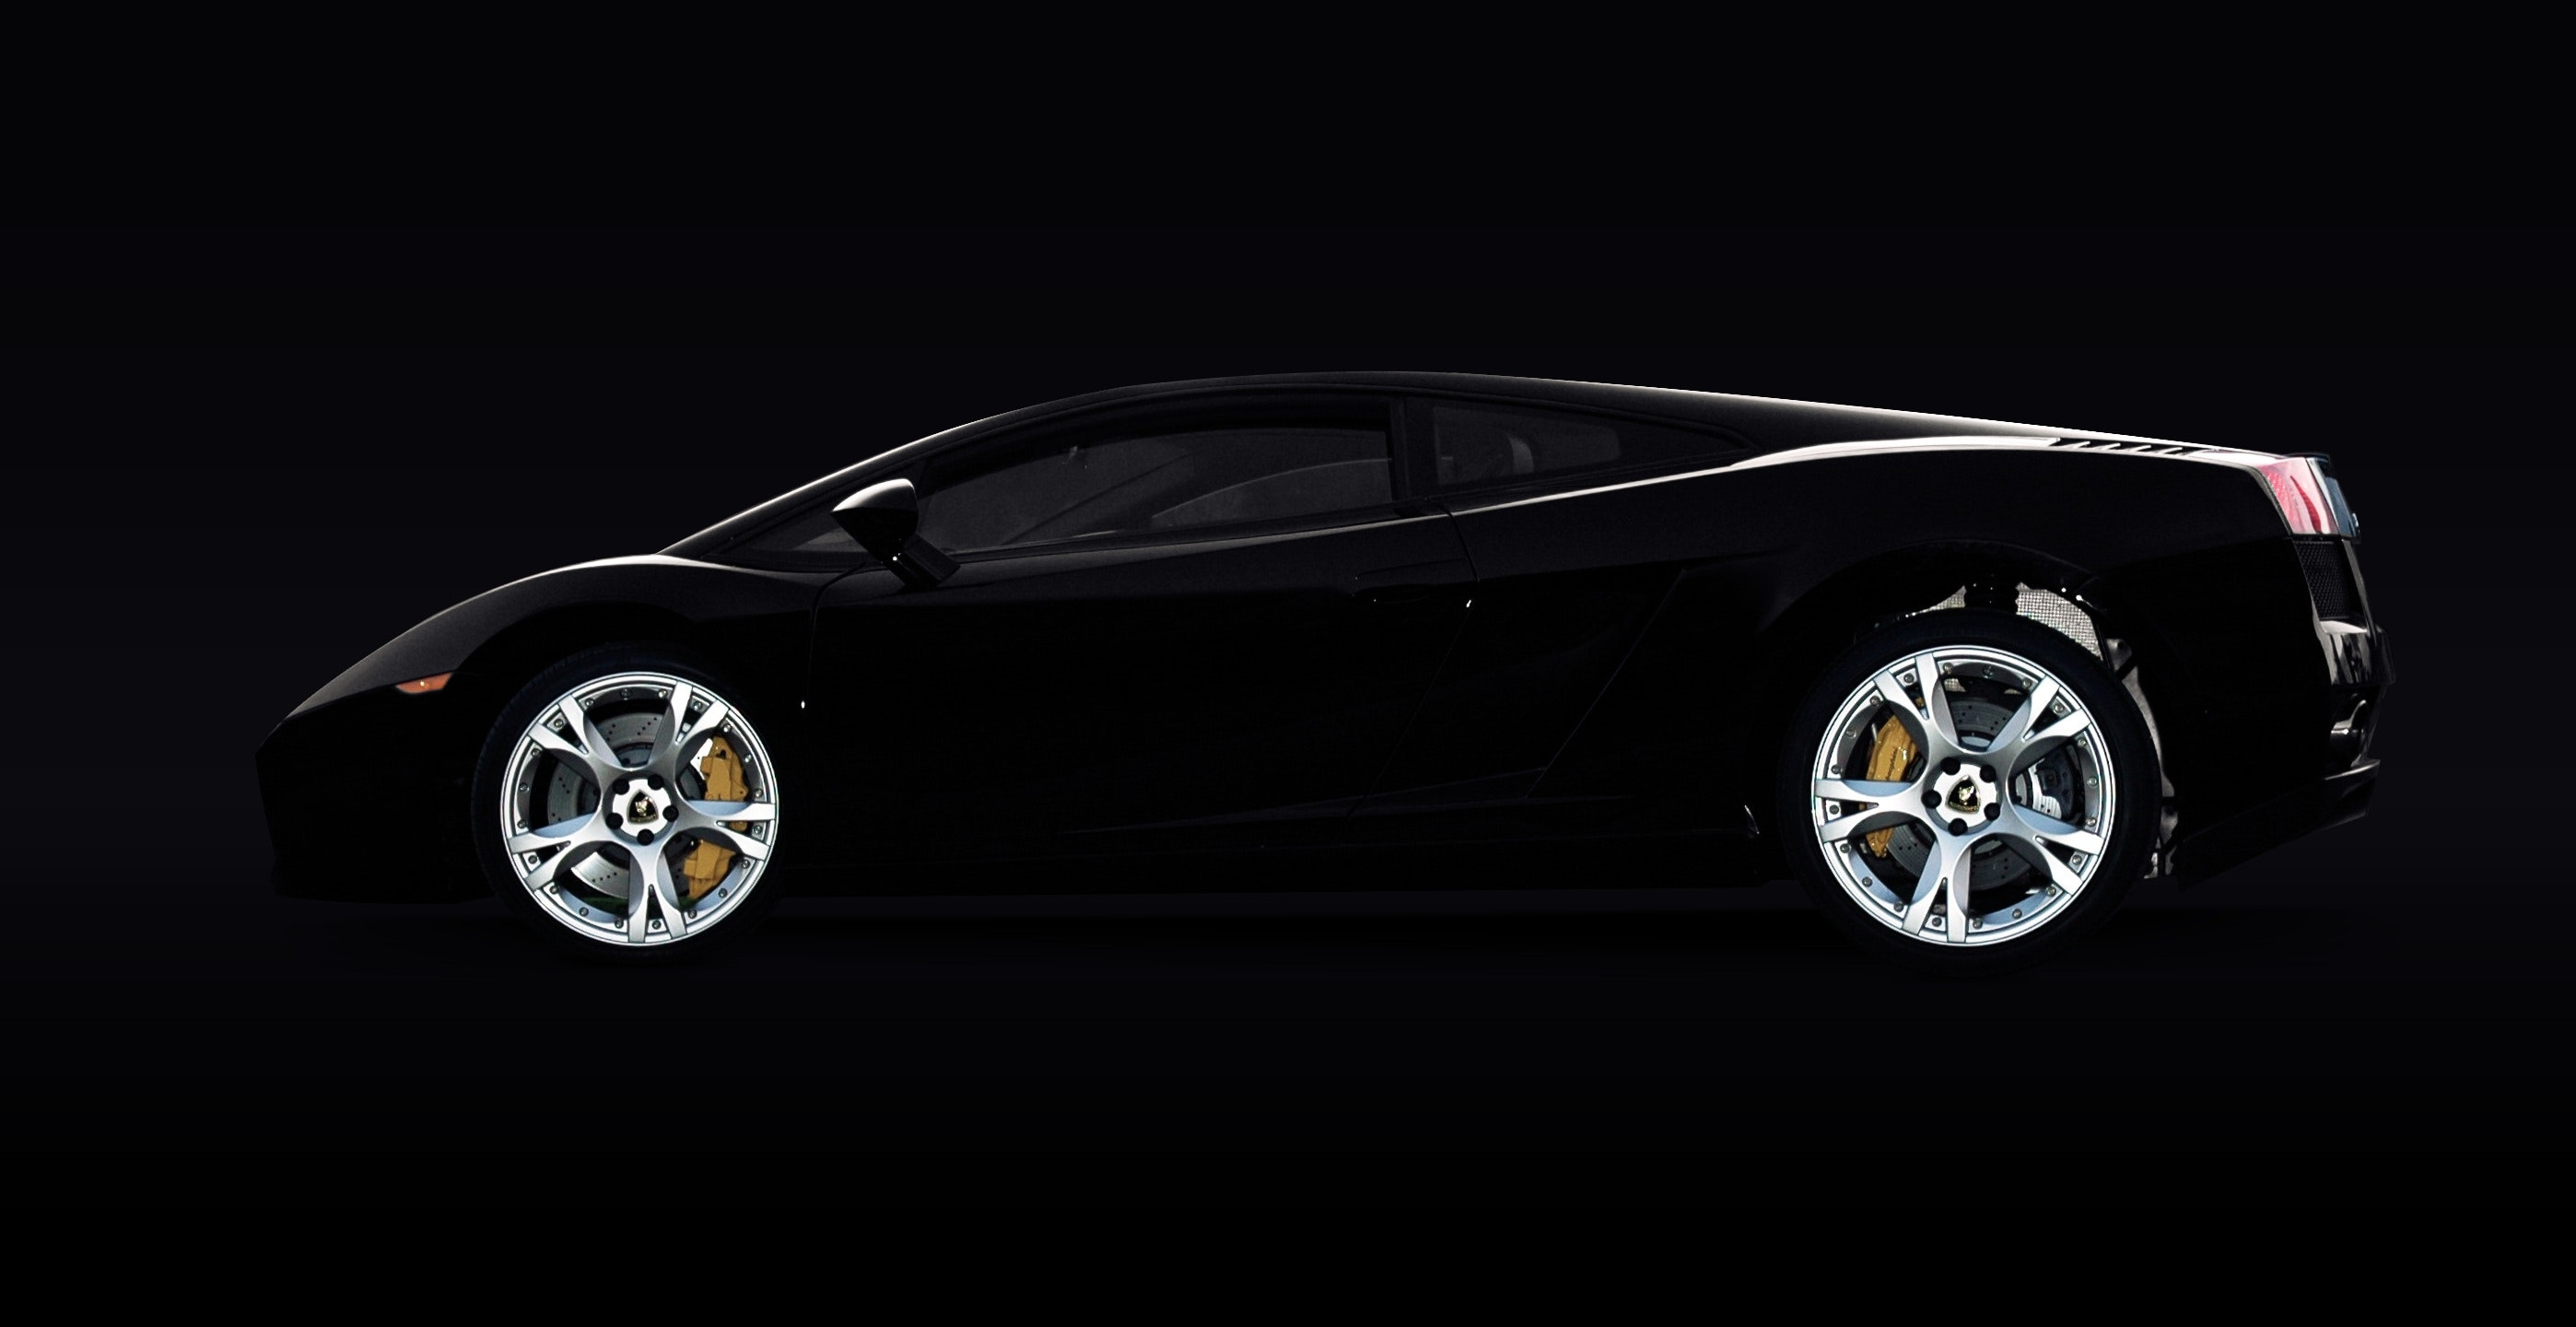 Black Lamborghini Murcielago, Auto, Luxury, Vehicle, Sports car, HQ Photo